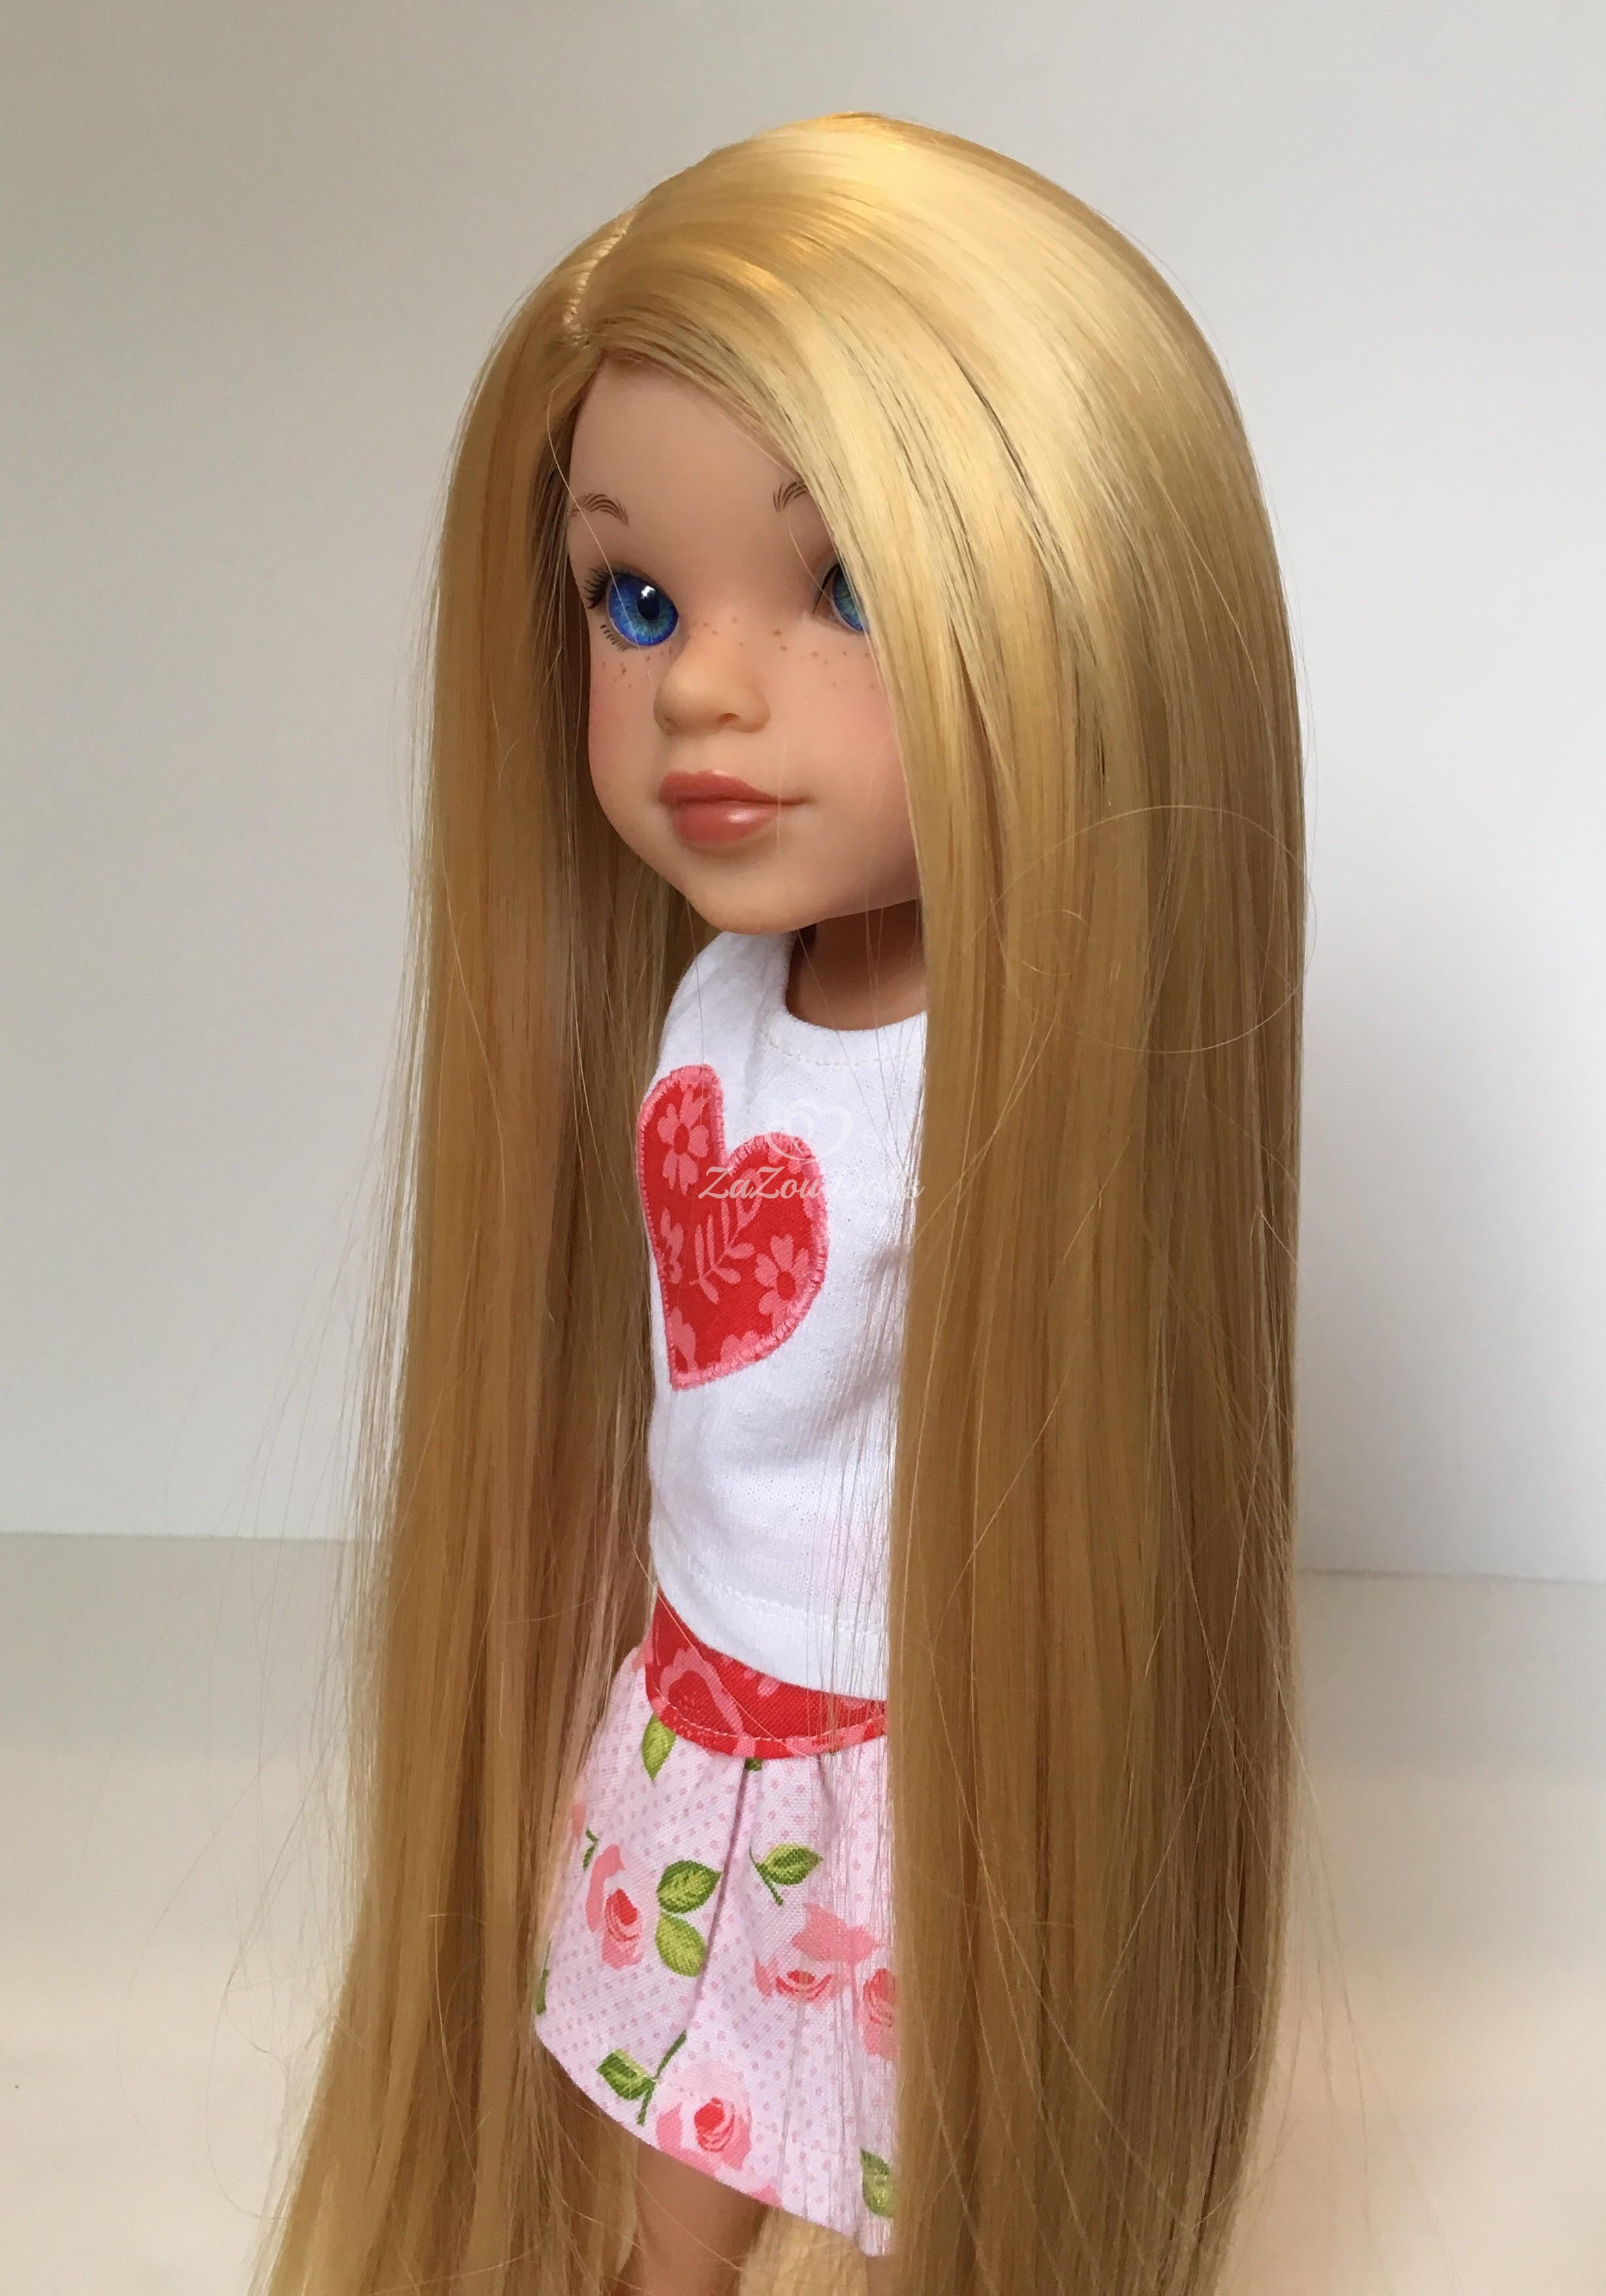 "ZaZou Luxury Petite Wig in Lemon Blonde for 14"" dolls such as Wellie Wishers and Heart4Hearts"